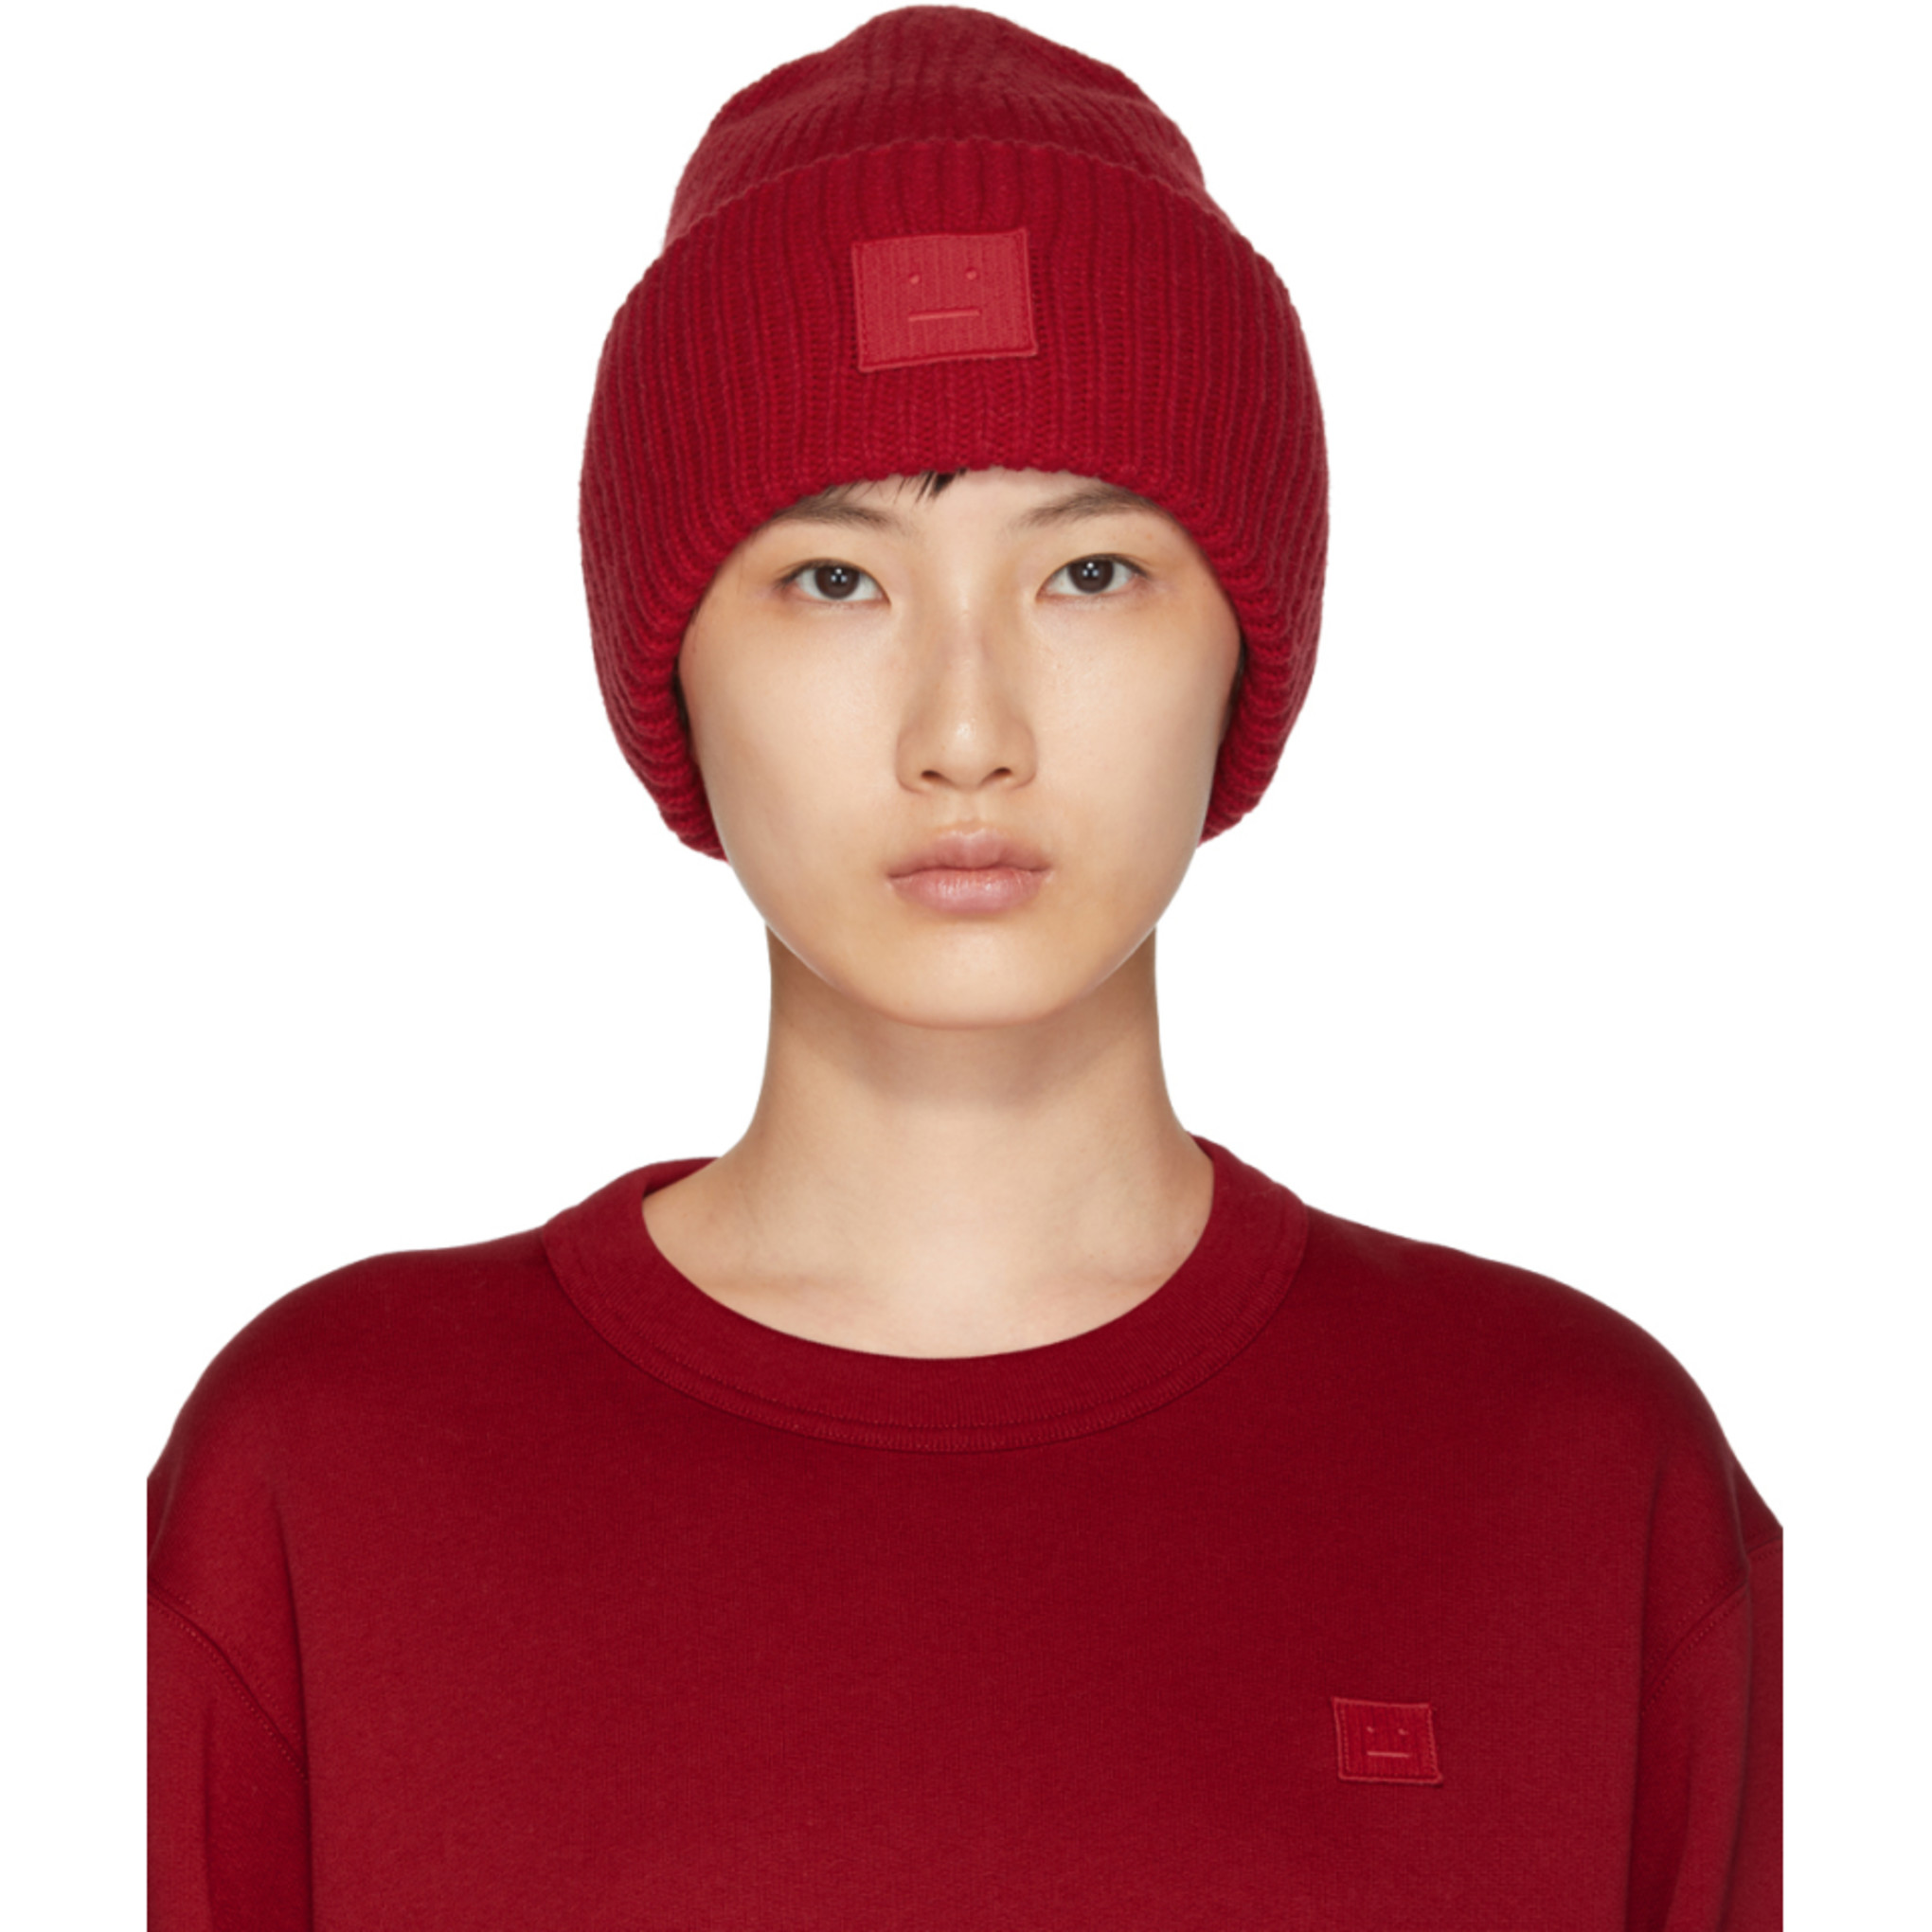 USD 314.64  (Overseas purchasing)Acne Studios 18 new red n smile hat ... 185c6c93a43